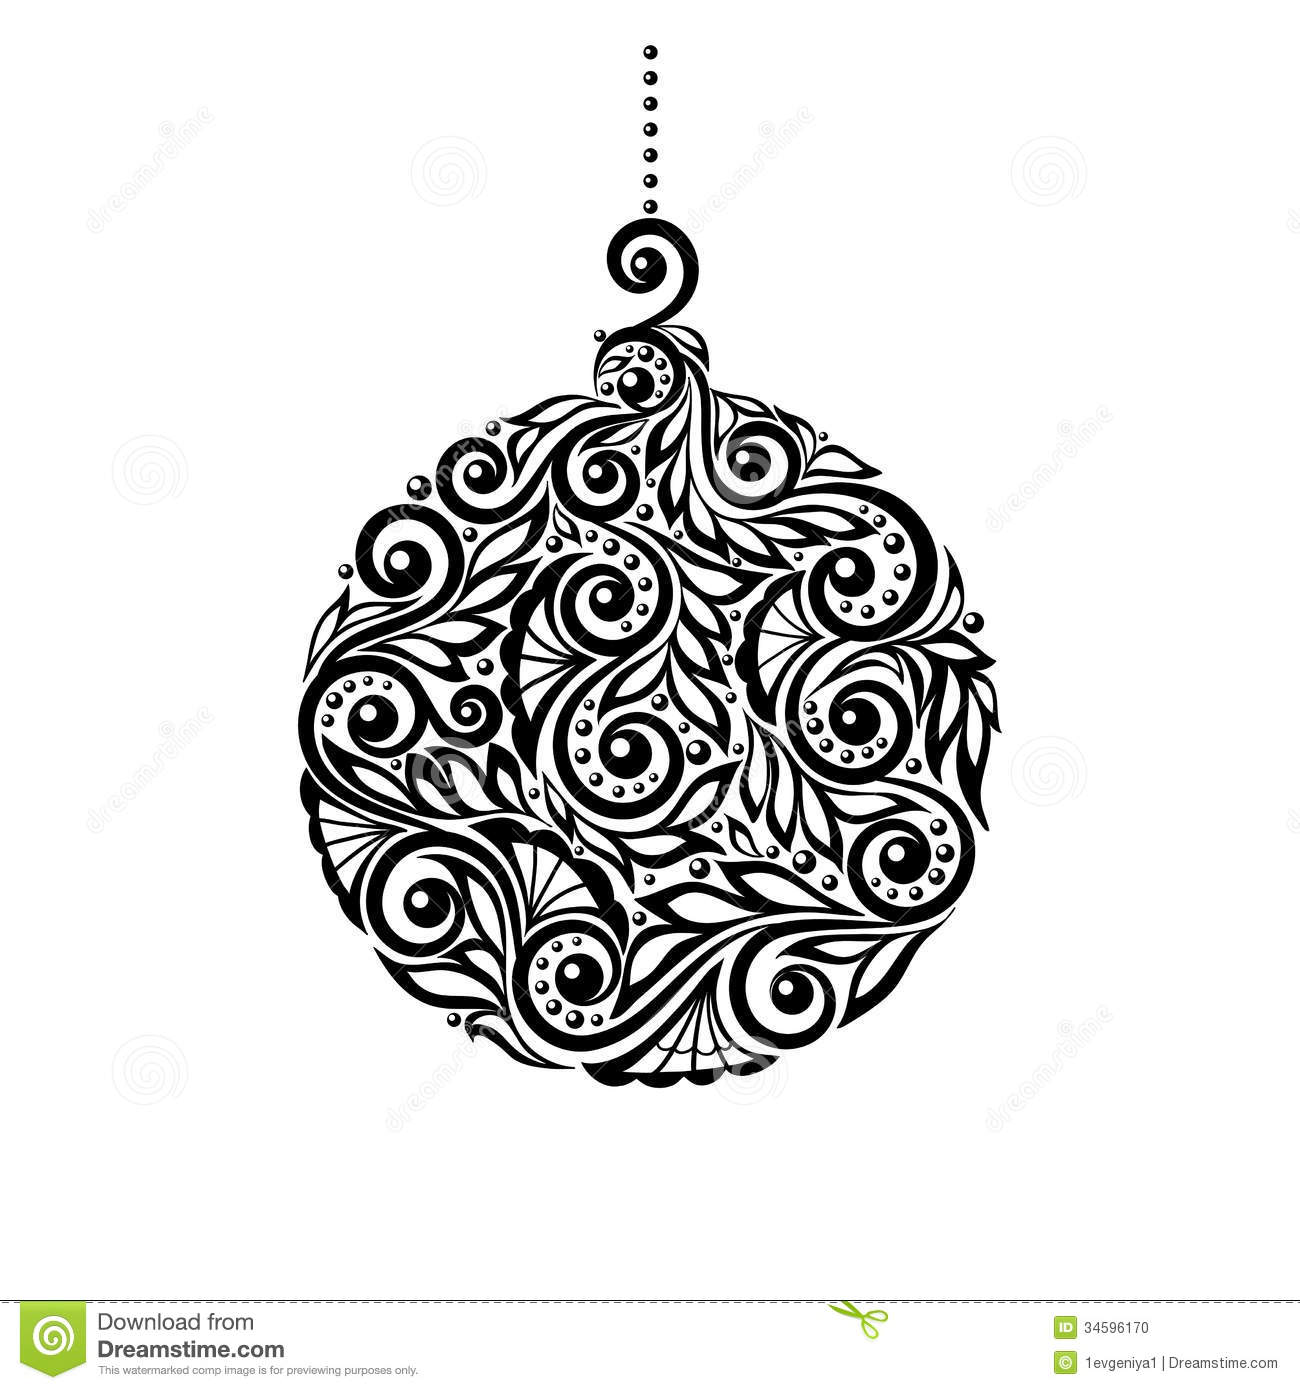 black and white christmas ball with a floral desig stock ceiling fan clipart free ceiling fan clipart